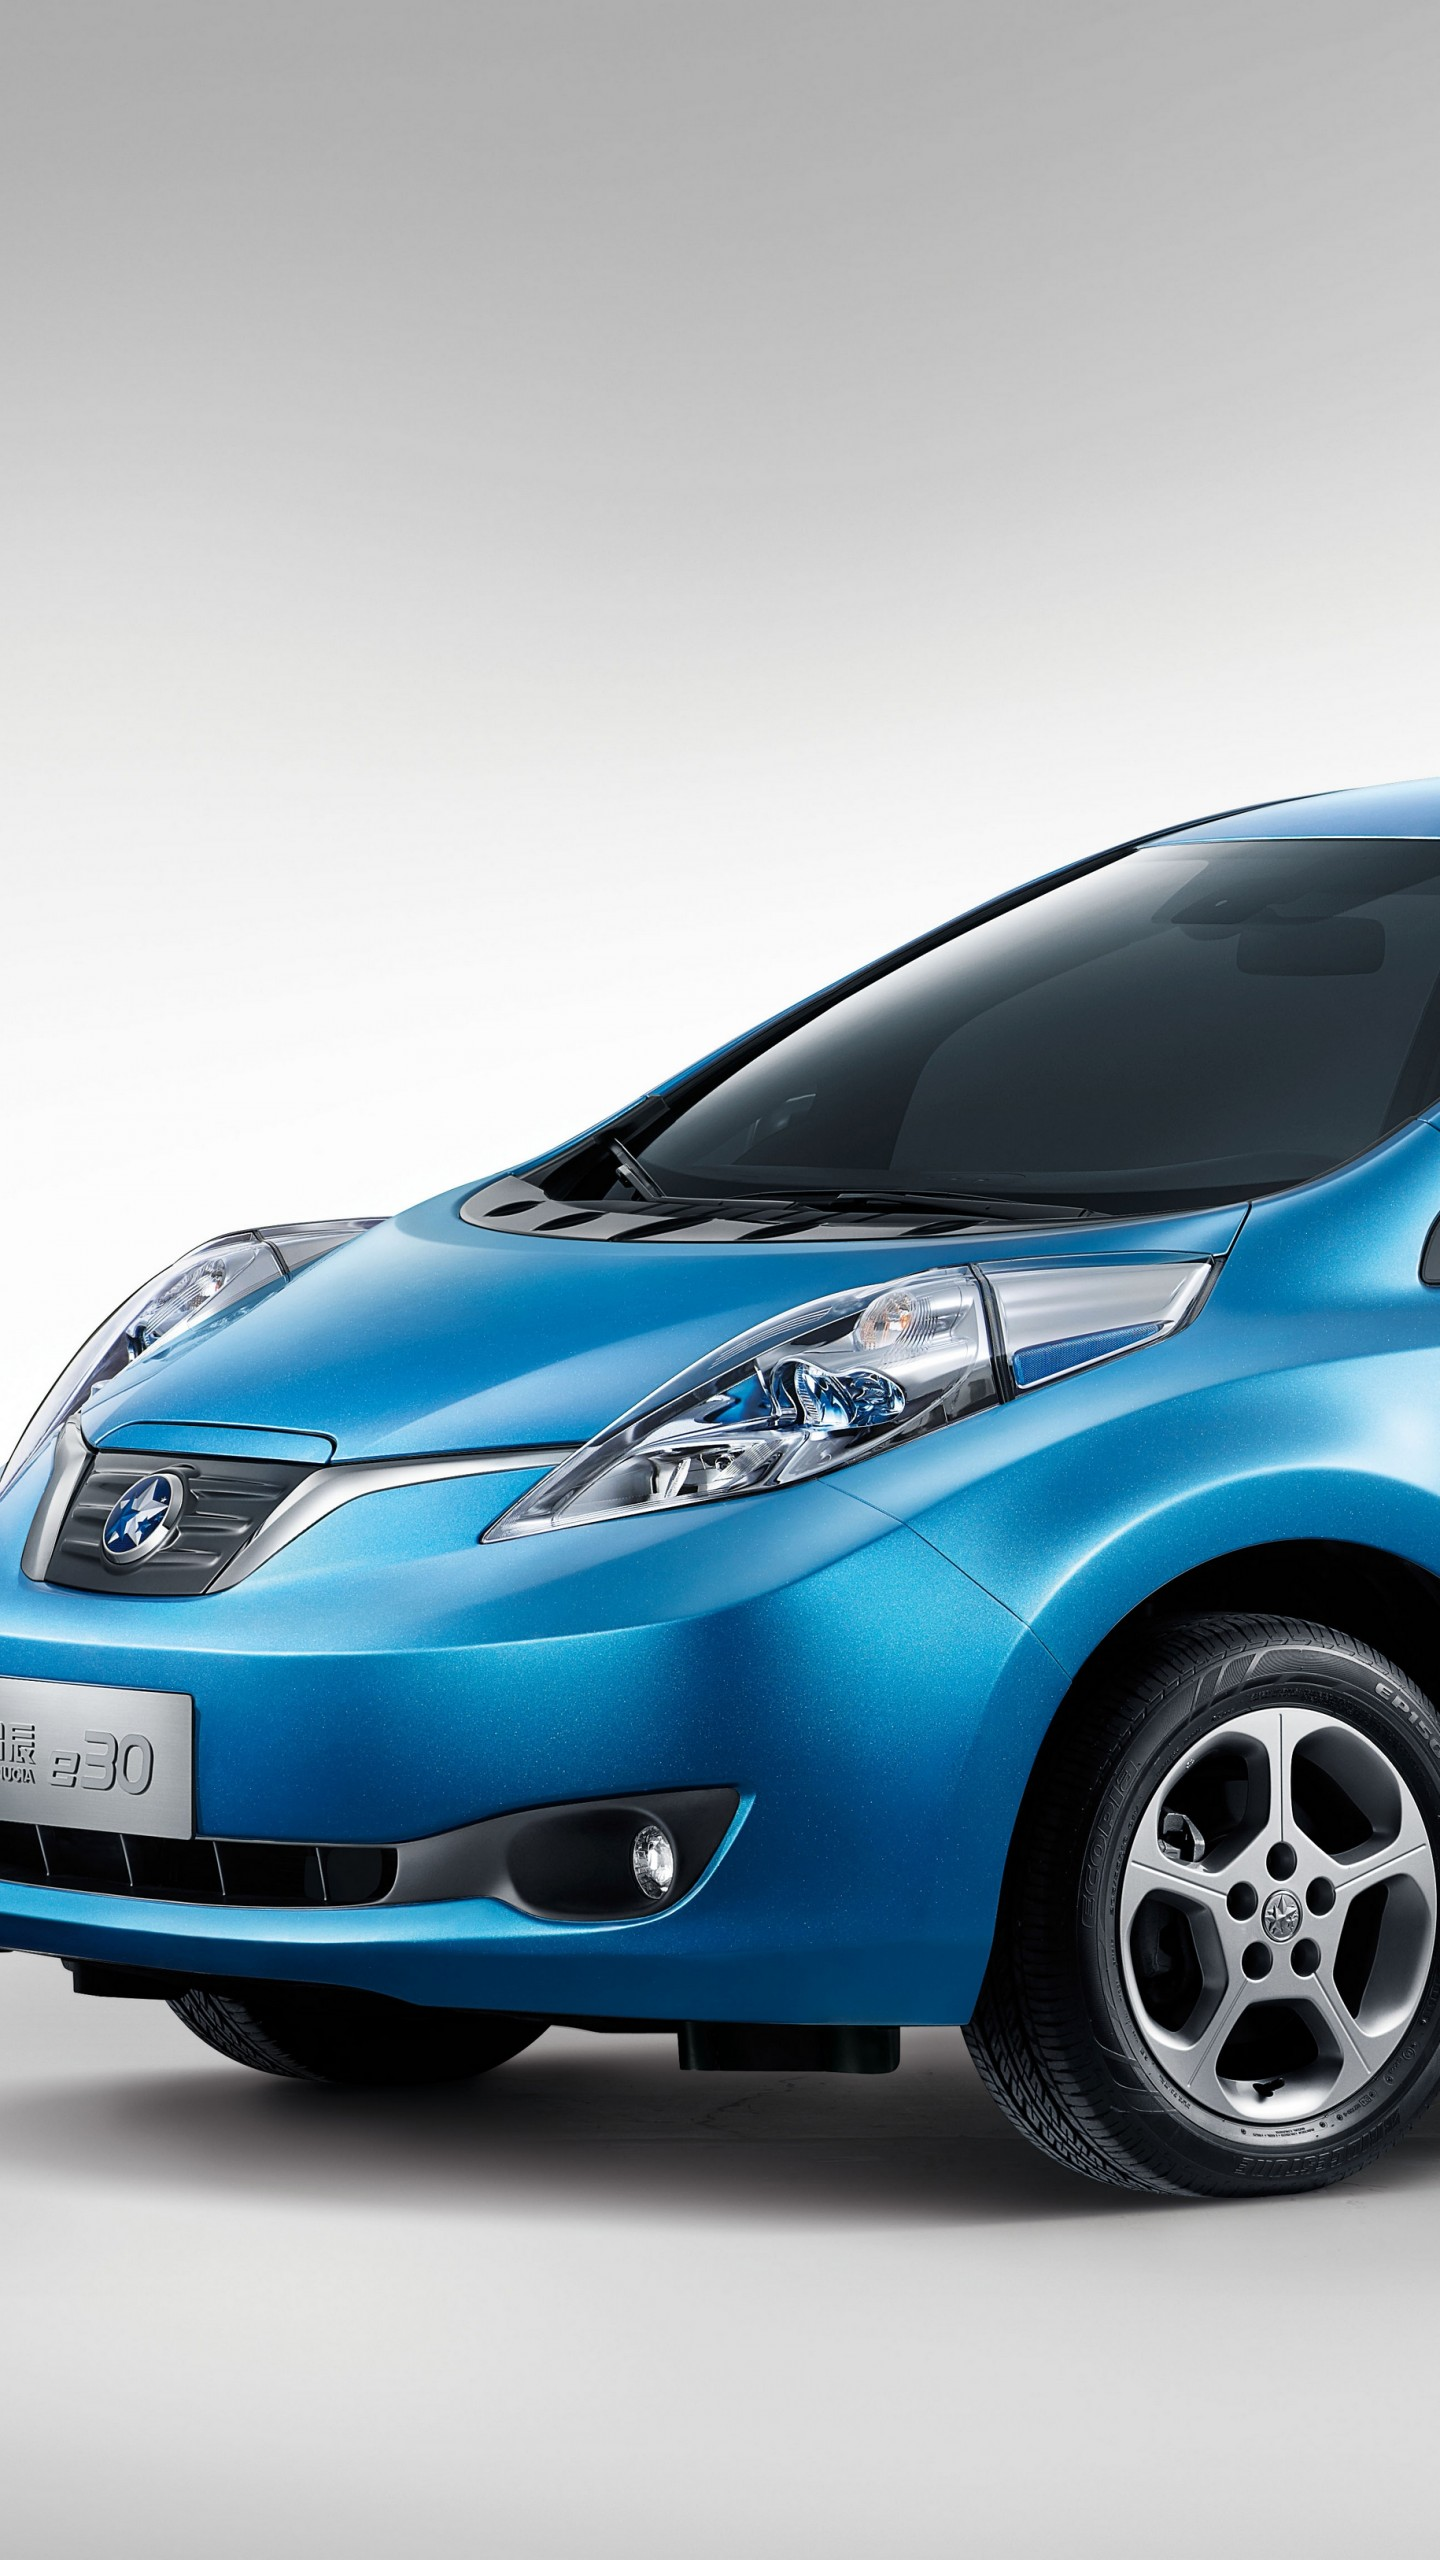 Rent A Suv >> Wallpaper Nissan LEAF, electric cars, Nissan, city cars, ecosafe, review, side, buy, rent, Cars ...